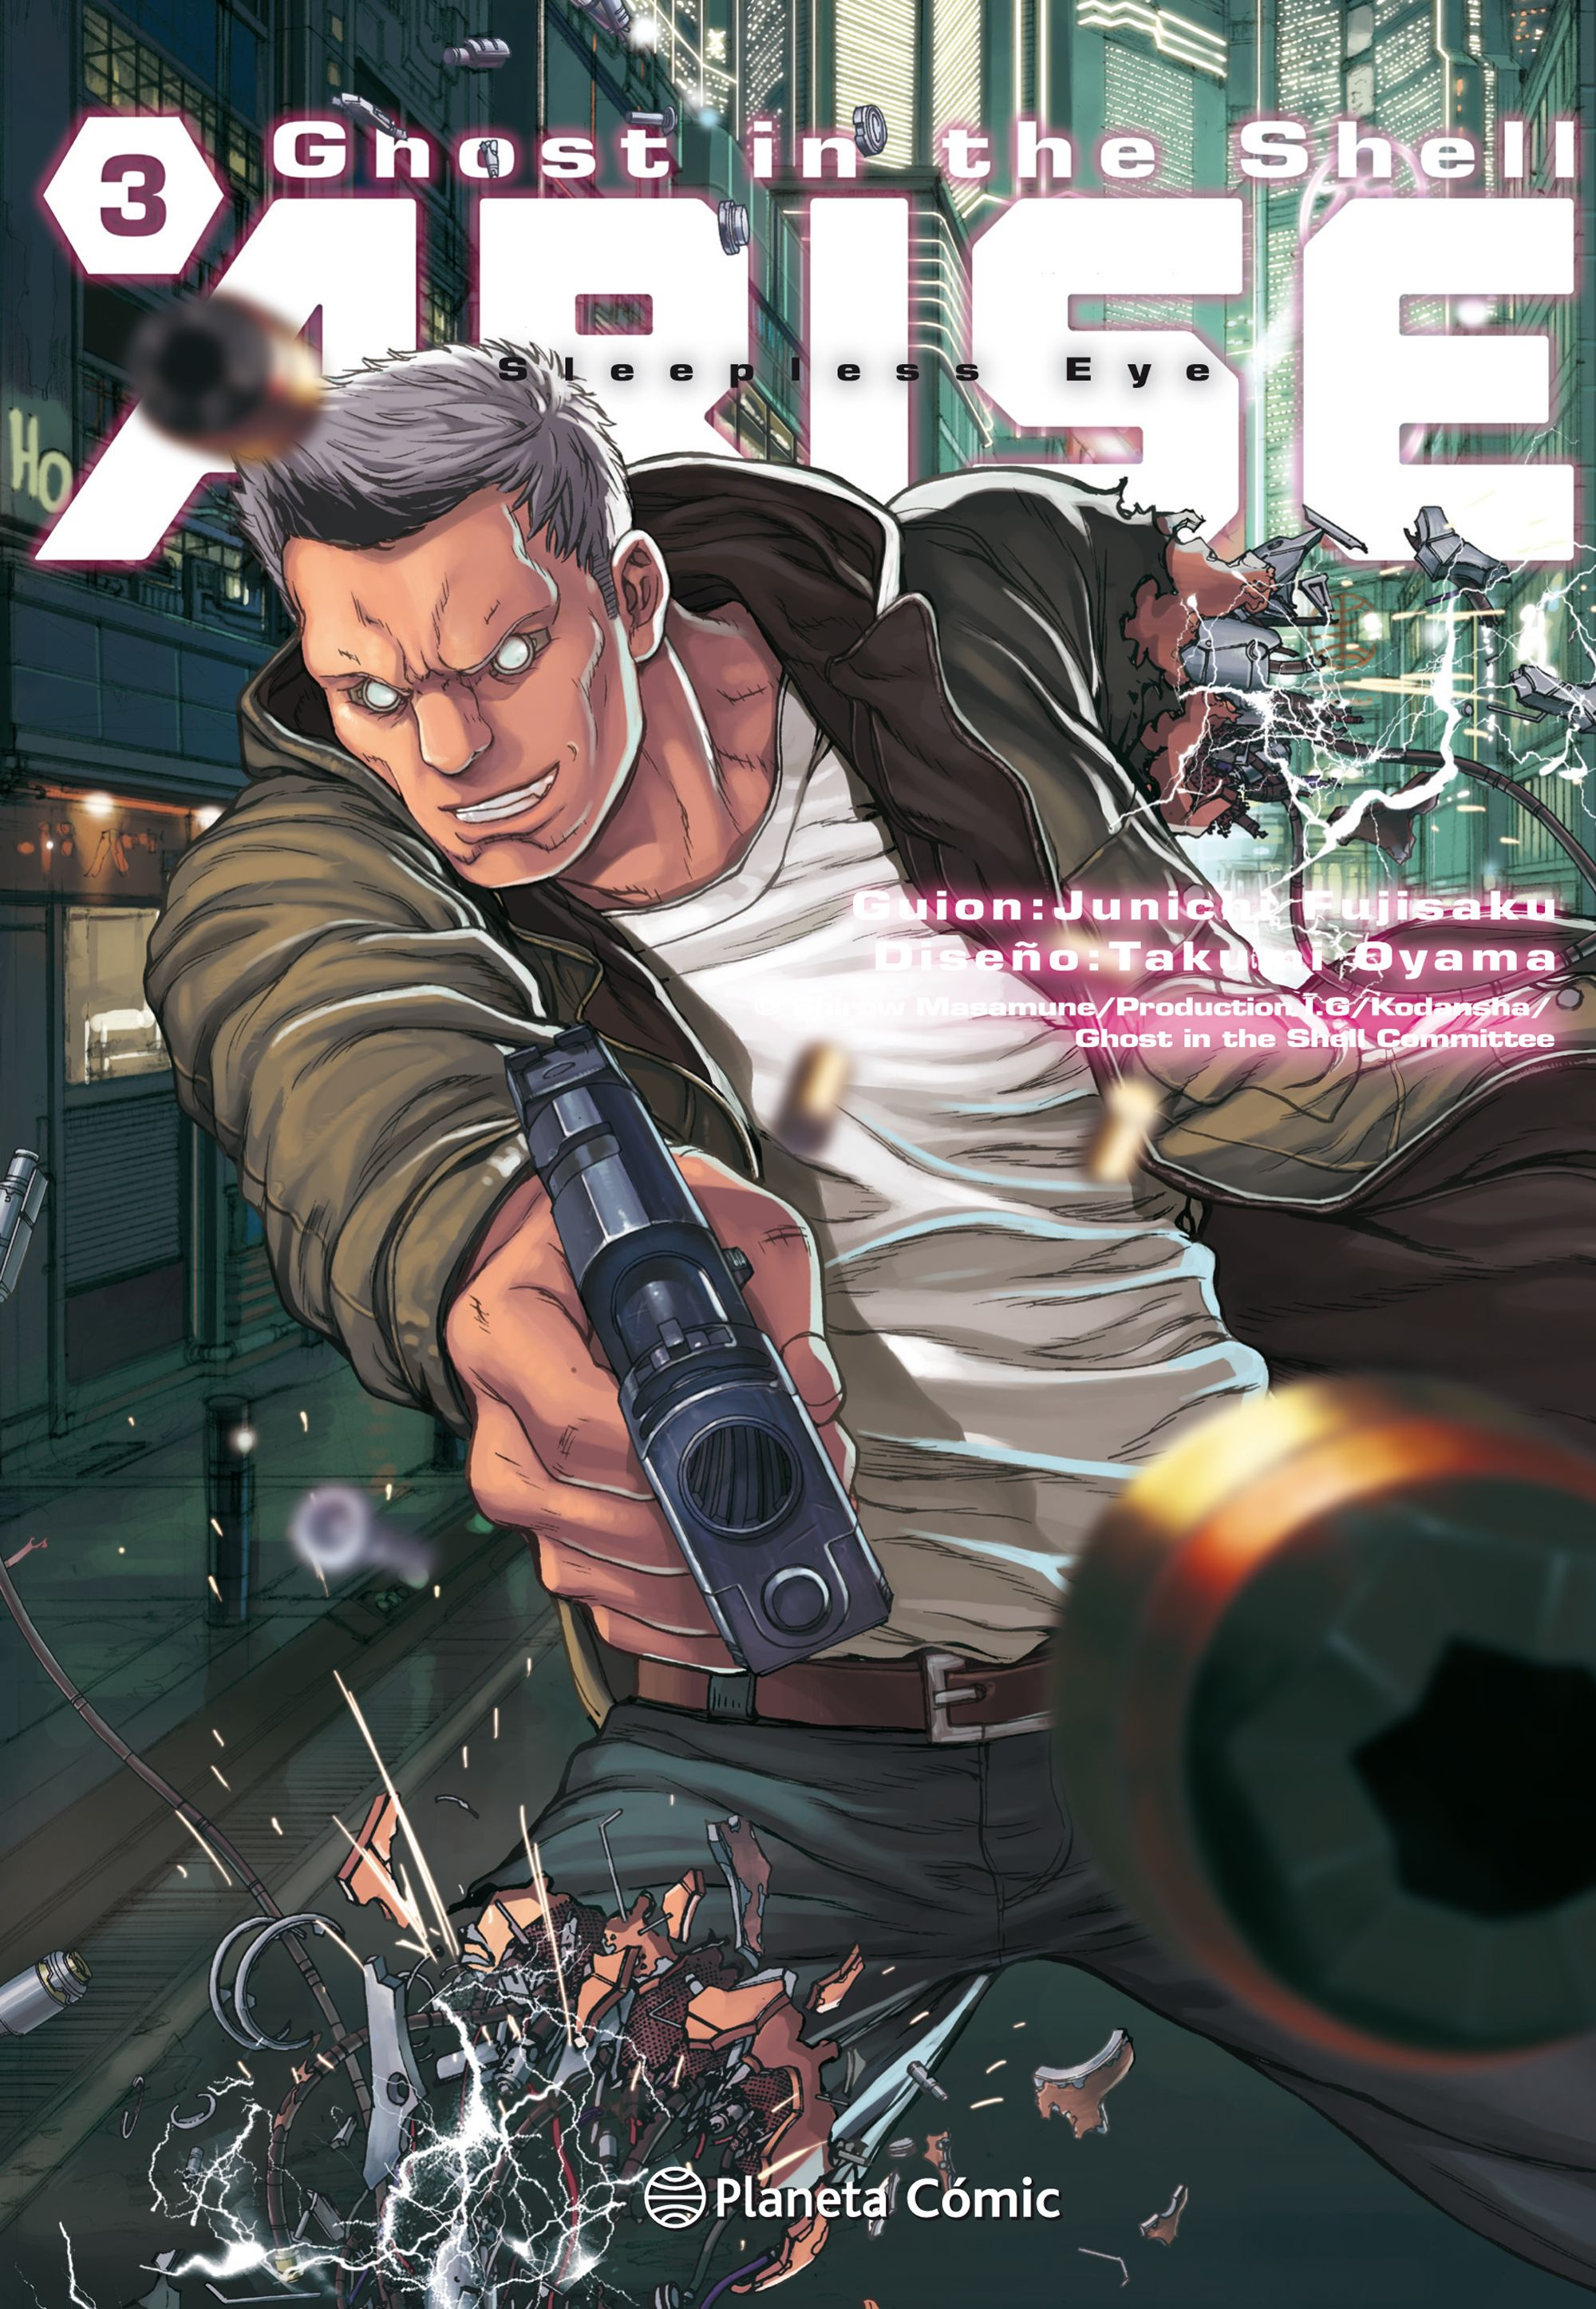 Ghost in the Shell Arise #3